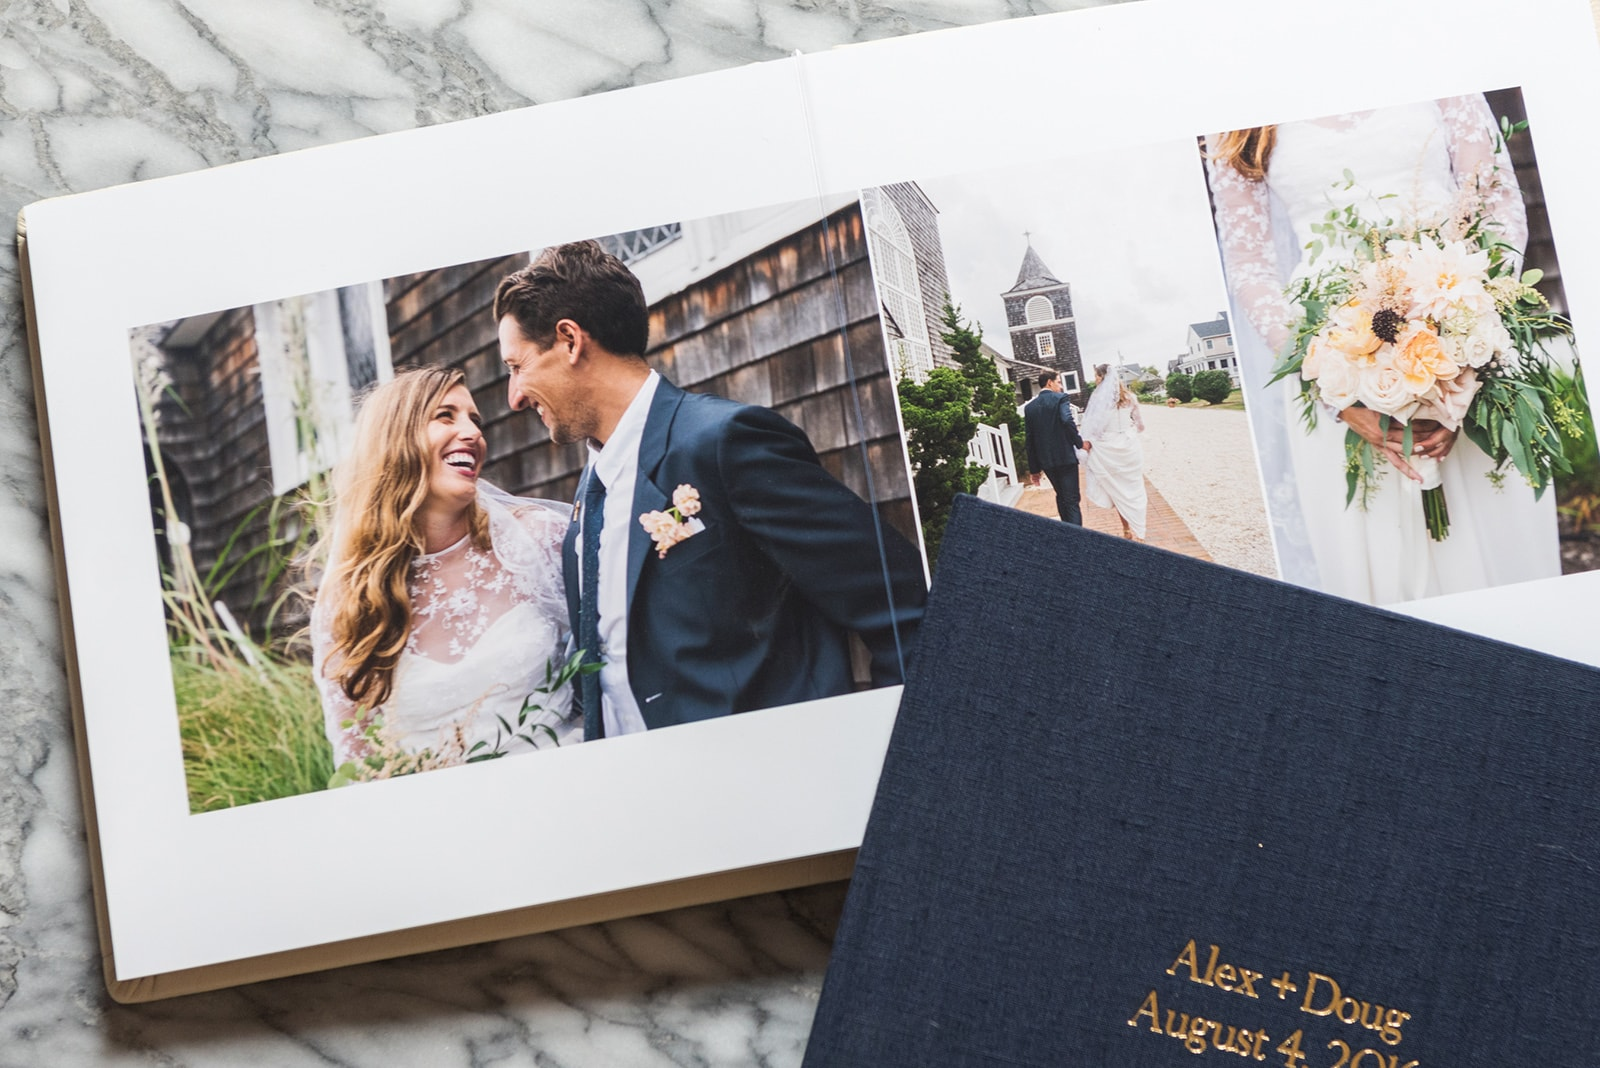 The Ultimate Guide to Having an NYC City Hall Wedding -- how to get married at NYC City Hall from an NYC City Hall wedding photographer